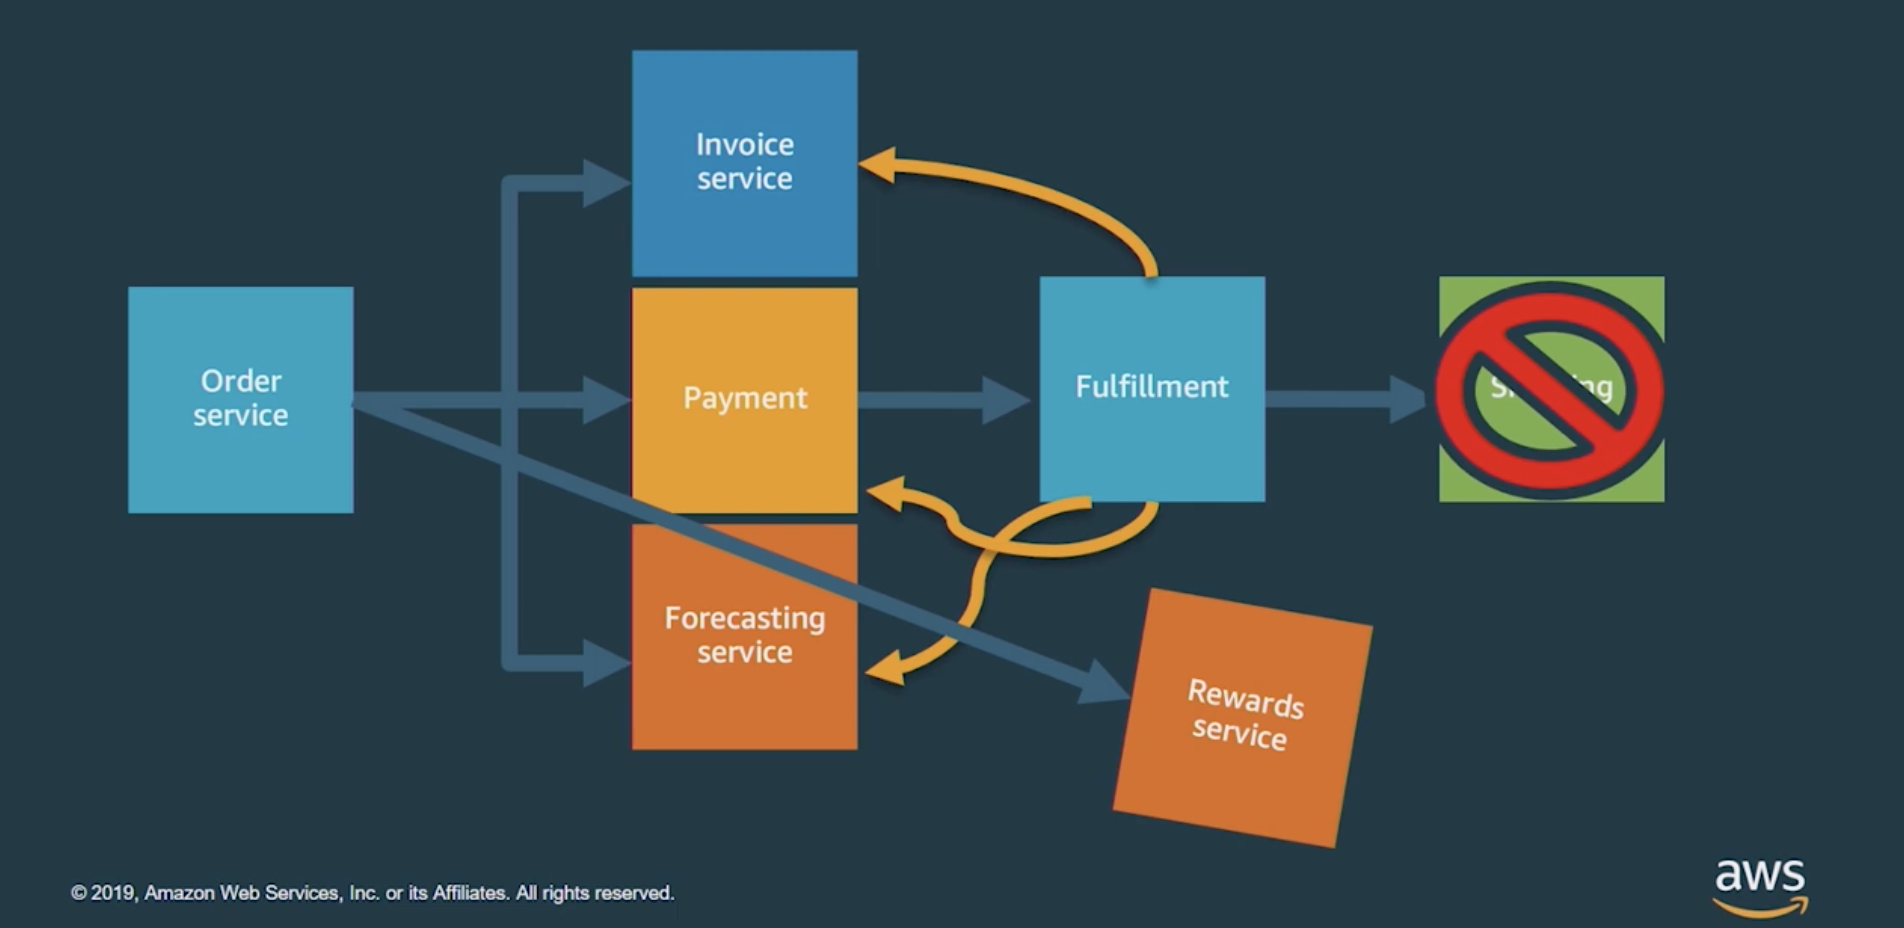 Problem with traditional commerce service architecture